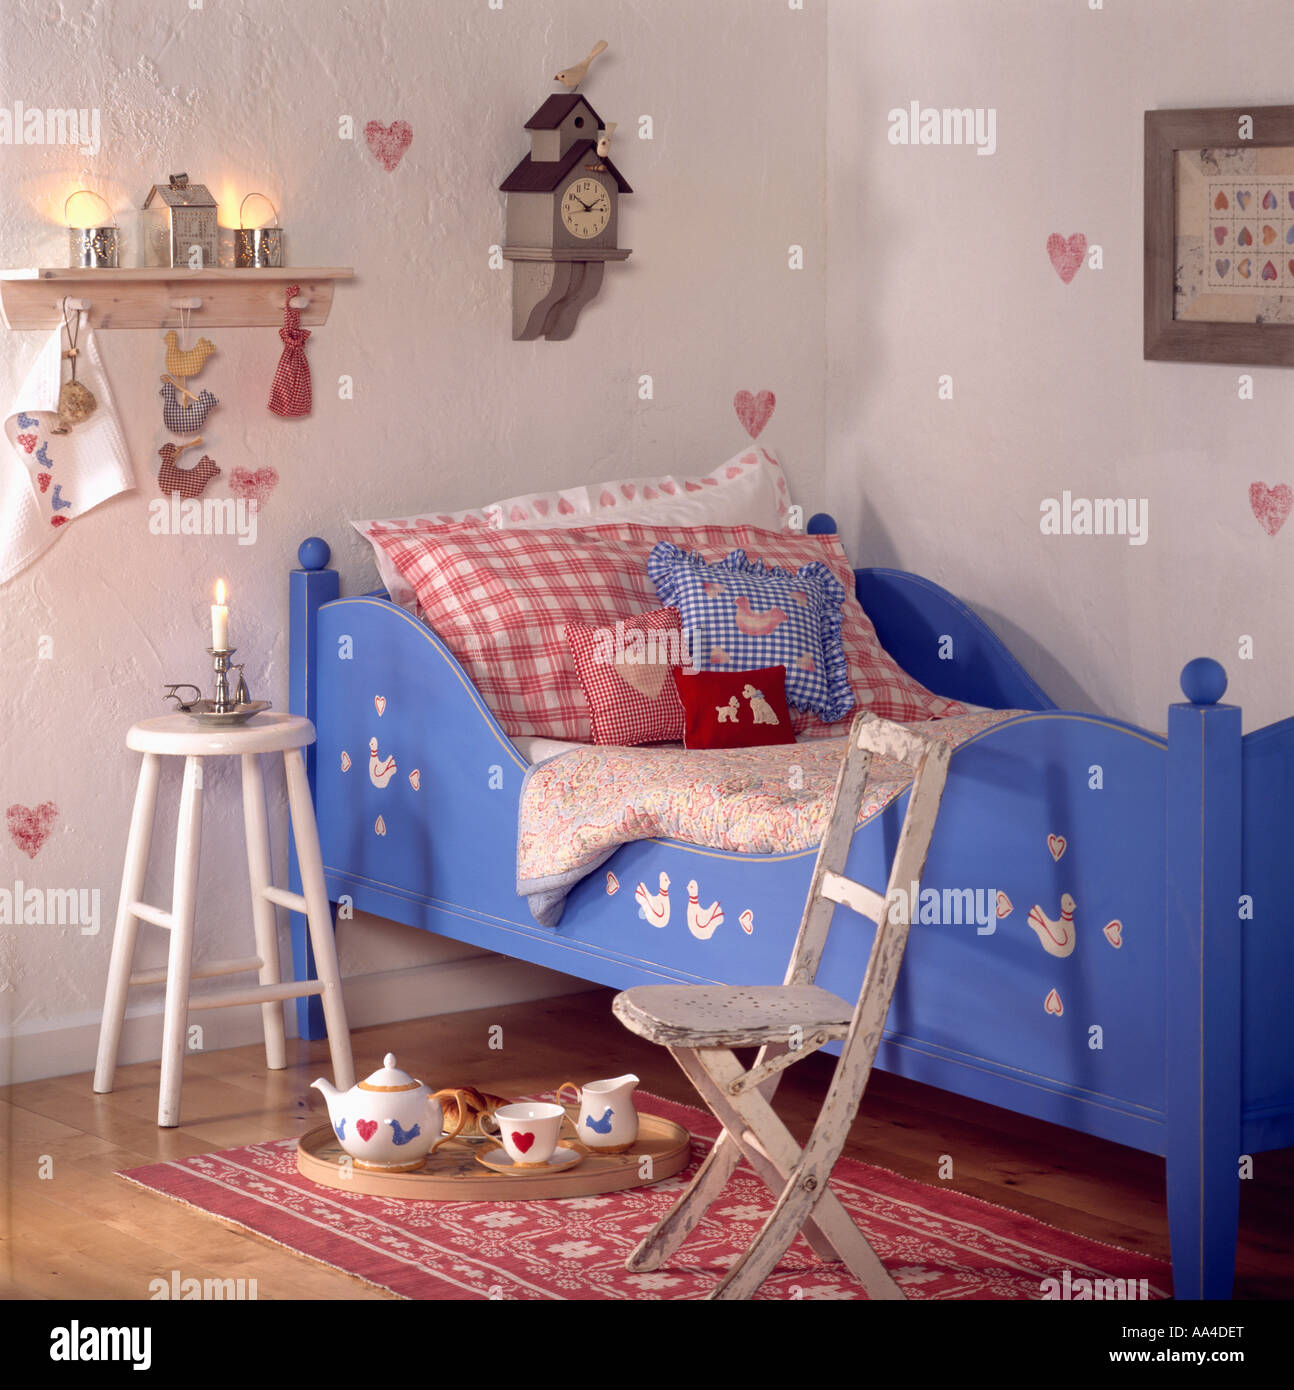 child s shaker style bedroom with blue wooden bed and cuckoo clock child s shaker style bedroom with blue wooden bed and cuckoo clock on wall